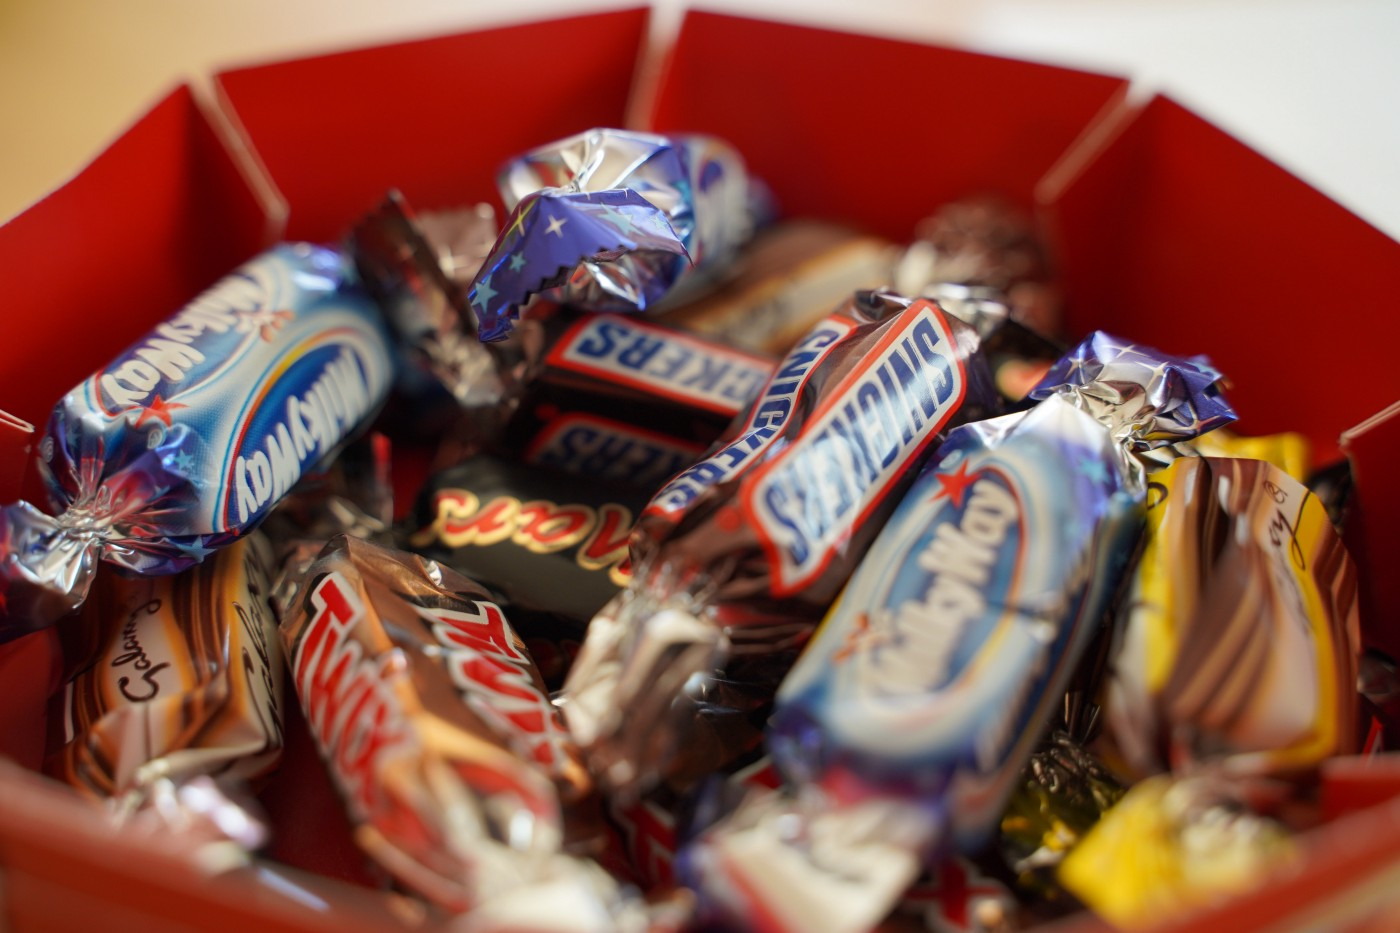 Bowl of mini candy bars with Snickers, Twix, and Milky Way in focus.